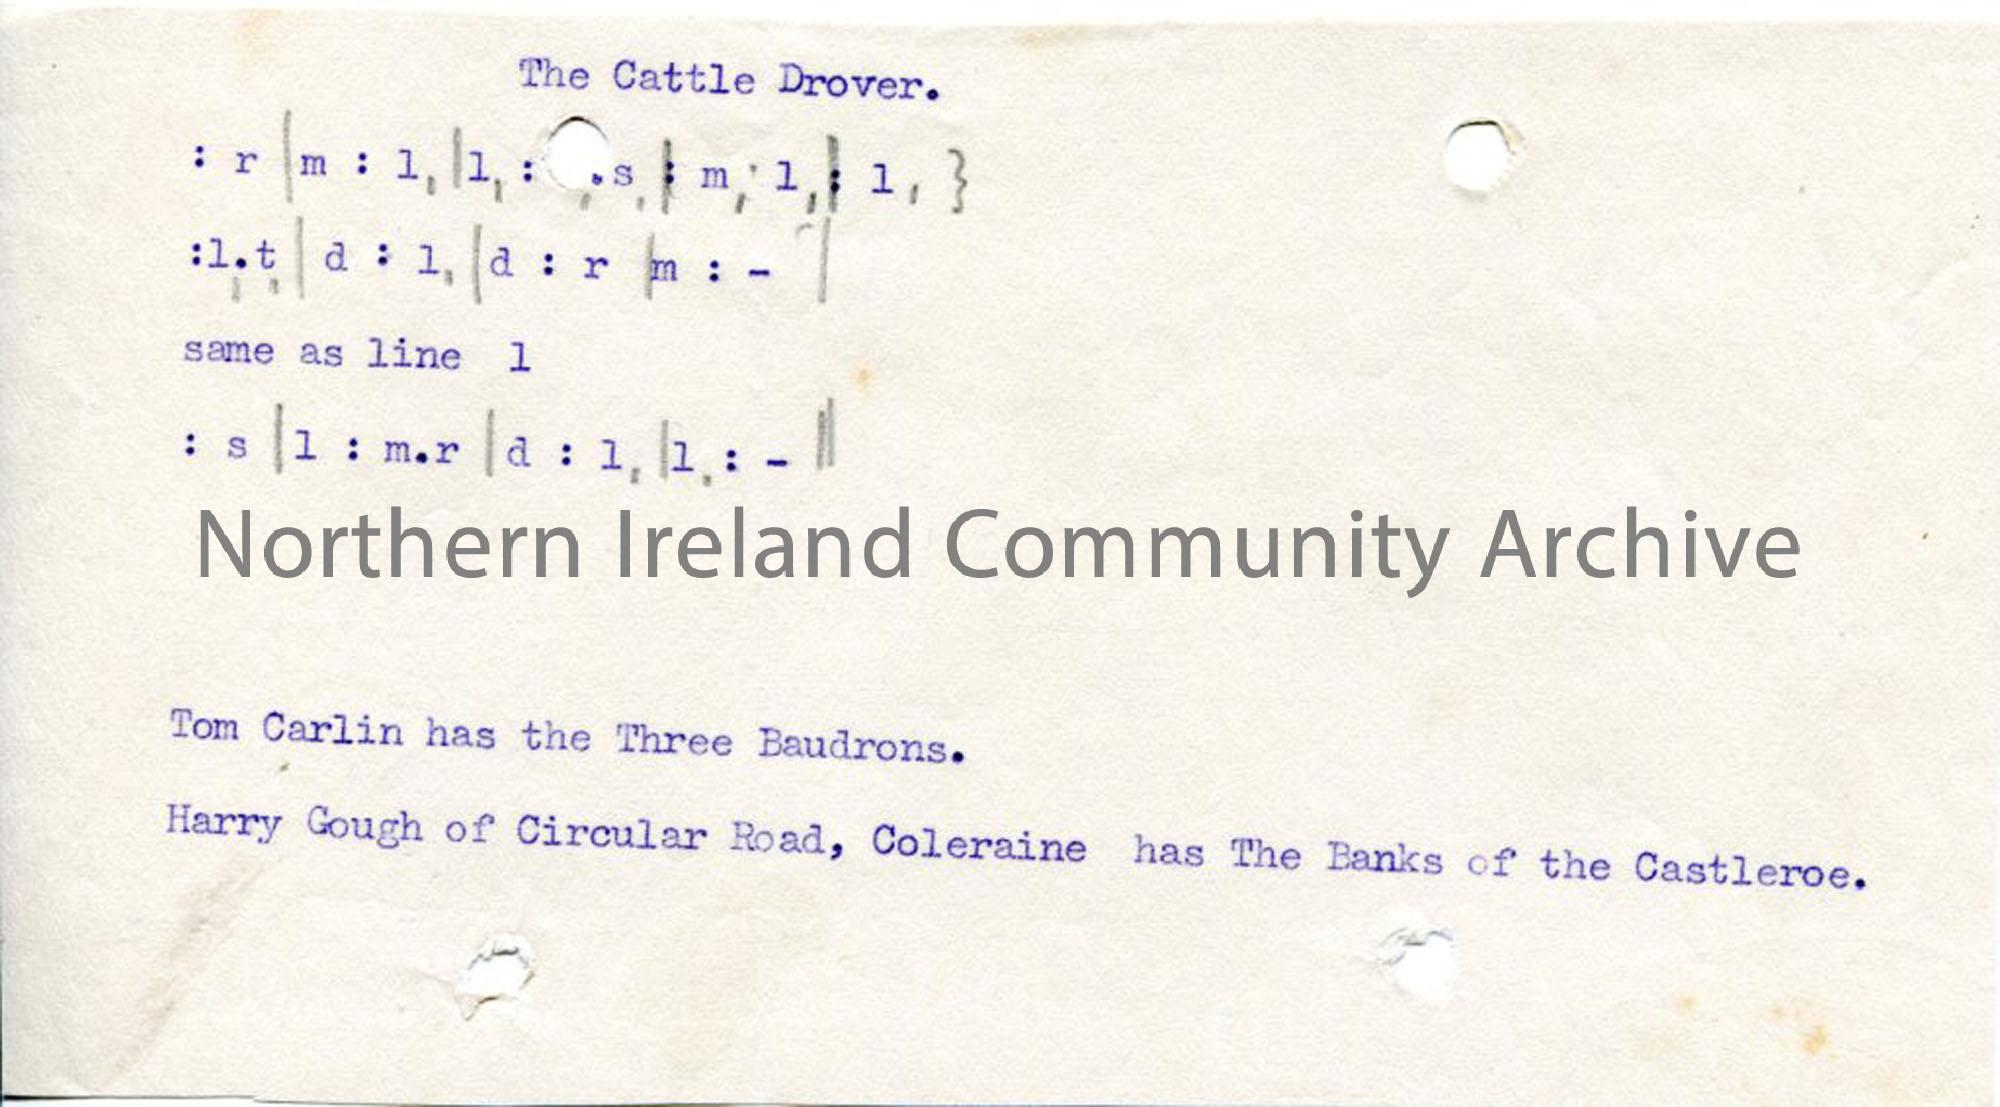 Typed tonic sol-fa notation to 'The Cattle Drover'